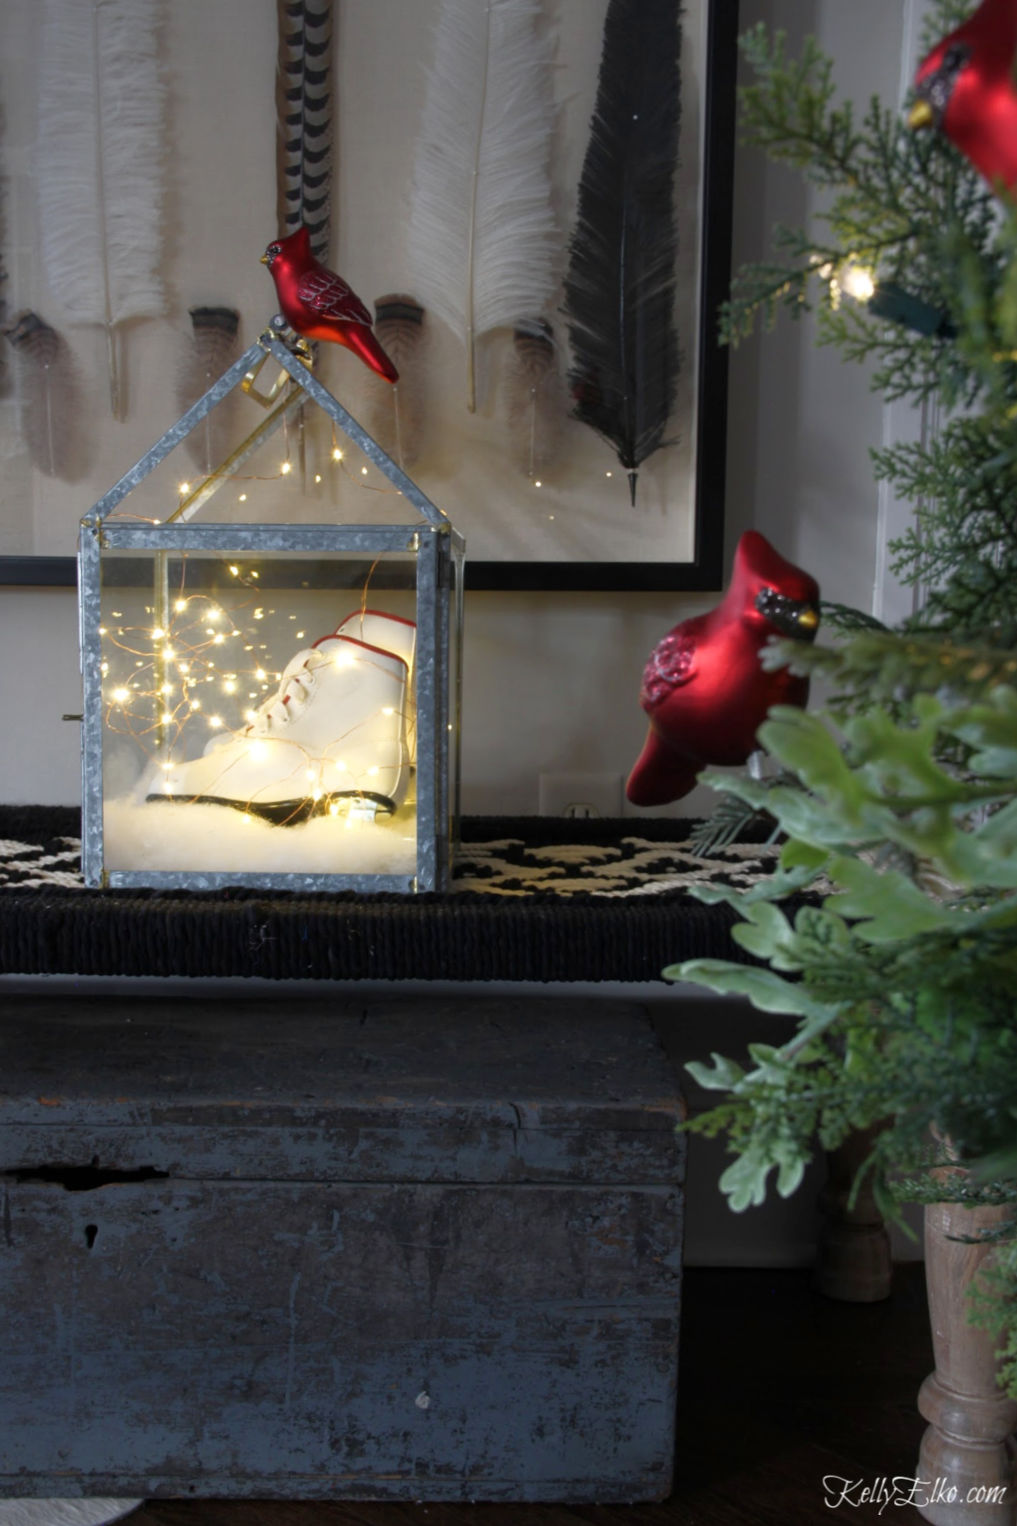 Creative Christmas Home Tour - love the lantern filled with ice skates and fairy lights kellyelko.com #christmas #christmasdecor #christmasdecorating #christmashome #christmastour #diychristmas #christmasideas #christmasmantel #christmastree #christmasornaments #vintagechristmas #farmhousechristmas #colorfulchristmas #creativechristmas #kellyelko #fairylights #cardinals